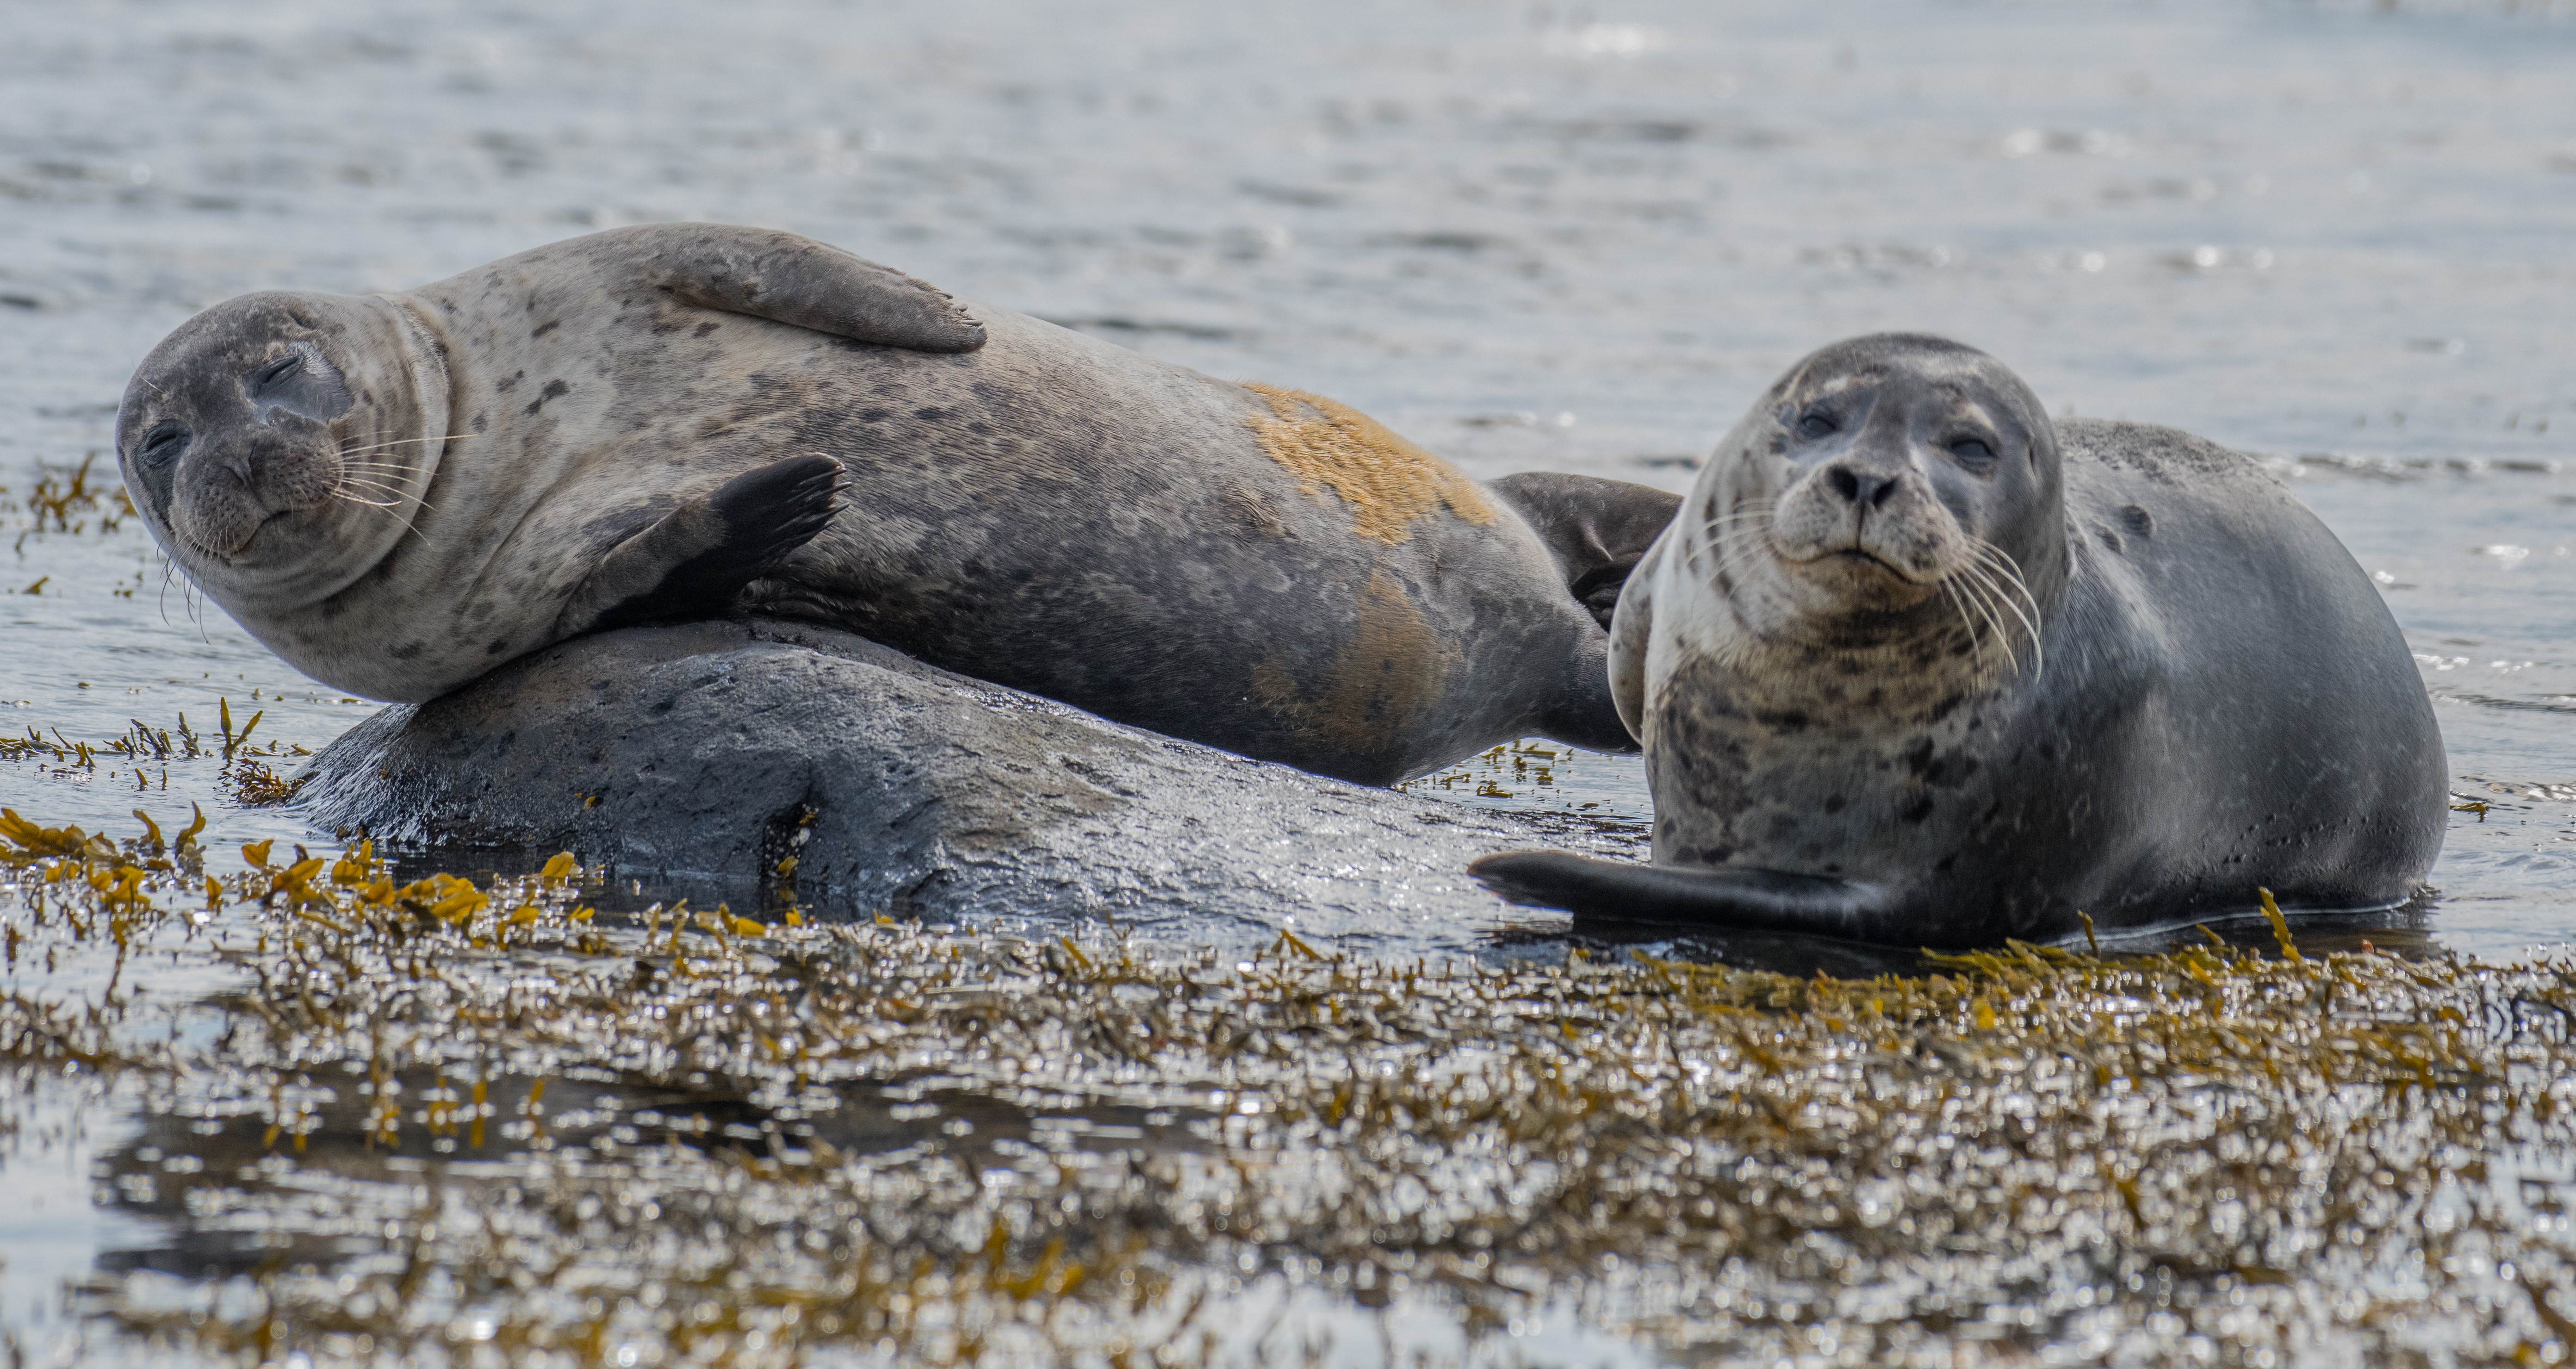 Seals in the Falkland Islands